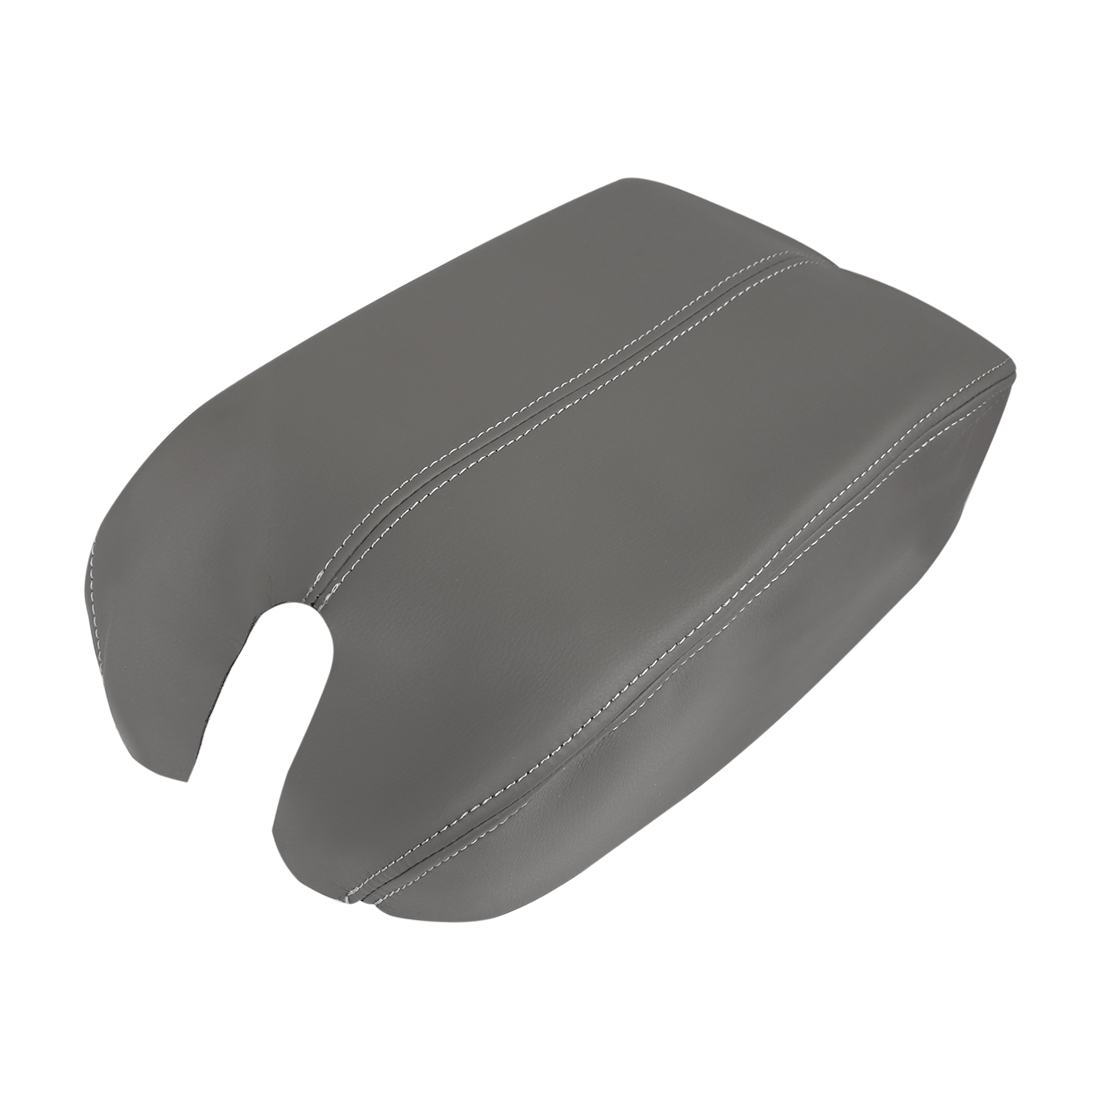 Microfiber Leather Center Console Lid Armrest Cover Gray for 08-12 Honda Accord